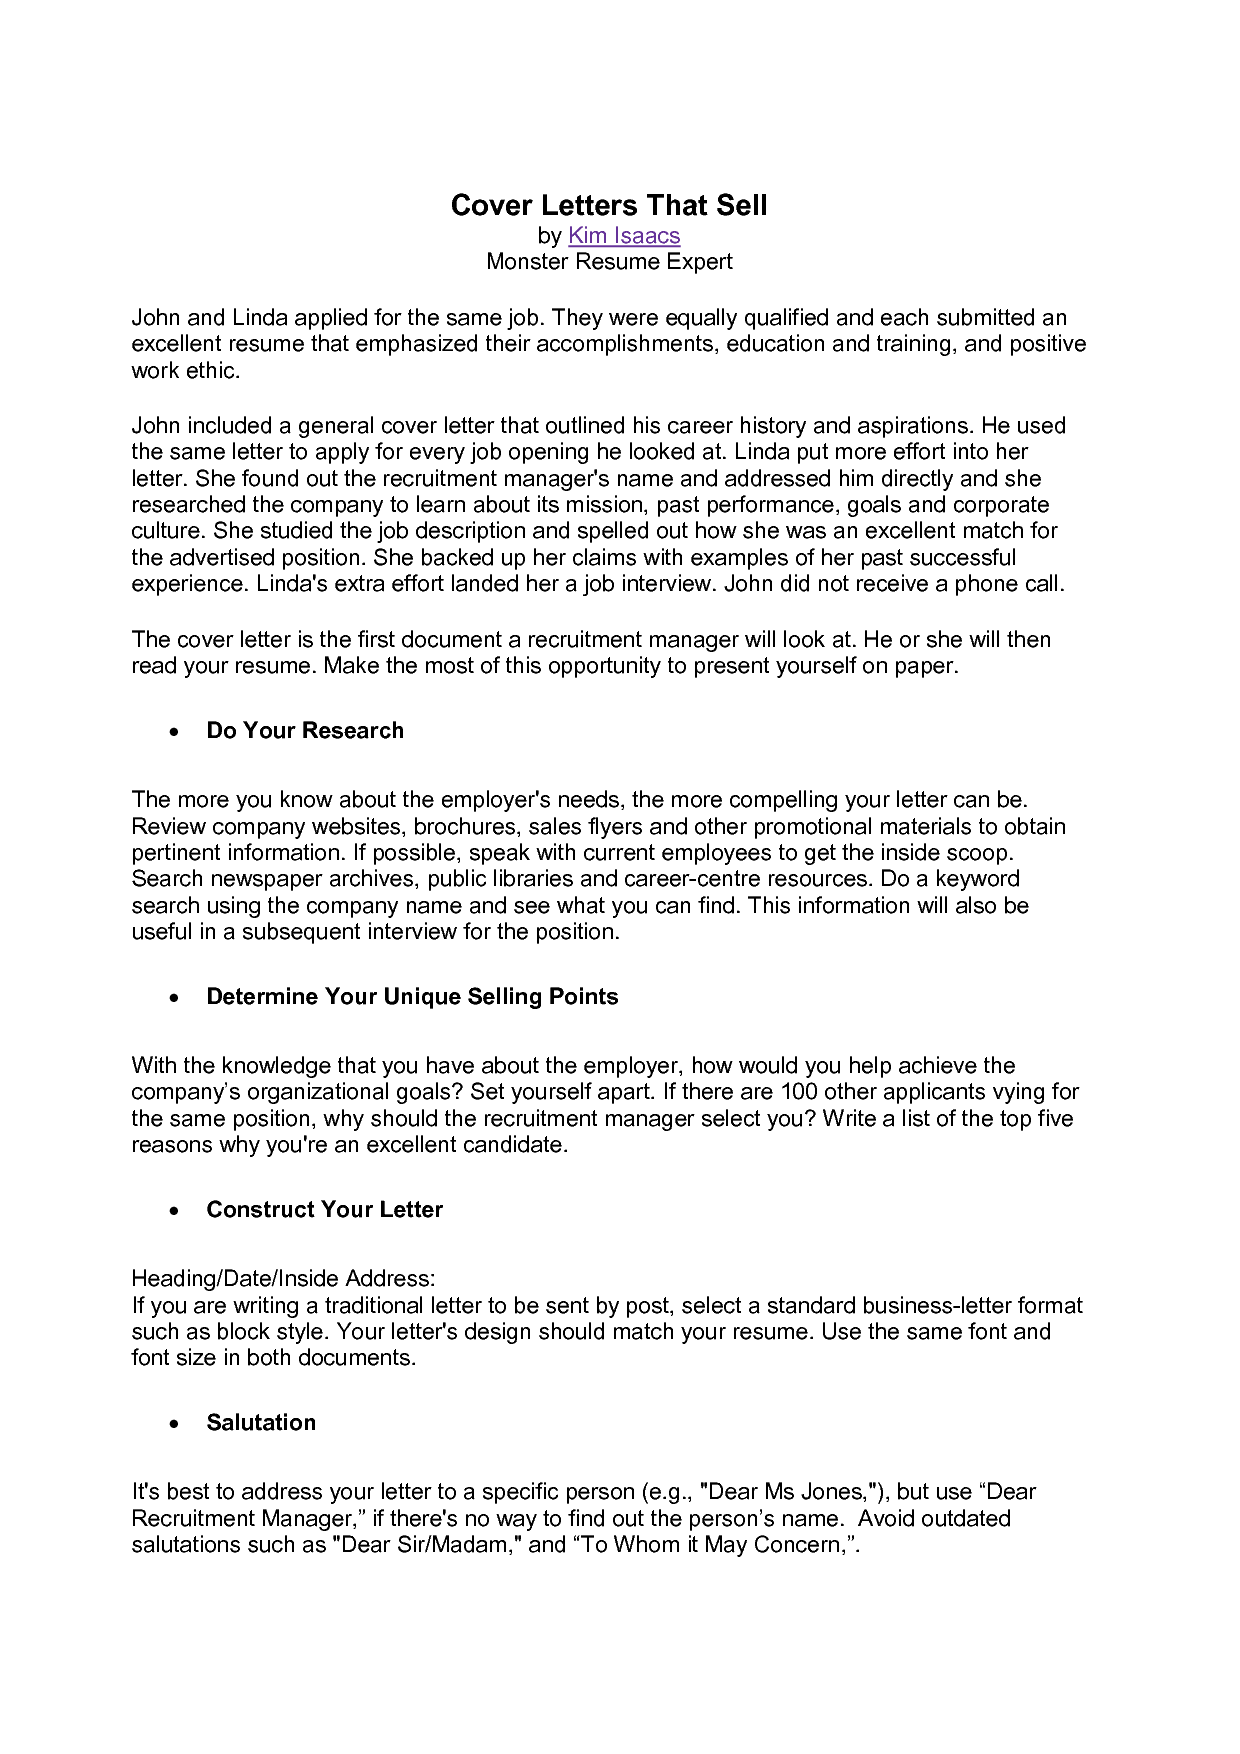 Monster cover letter free download monster cover letter monster monster cover letter free download monster cover letter monster cover letter template monster cover letter examples monster cover letter tips mitanshu Images